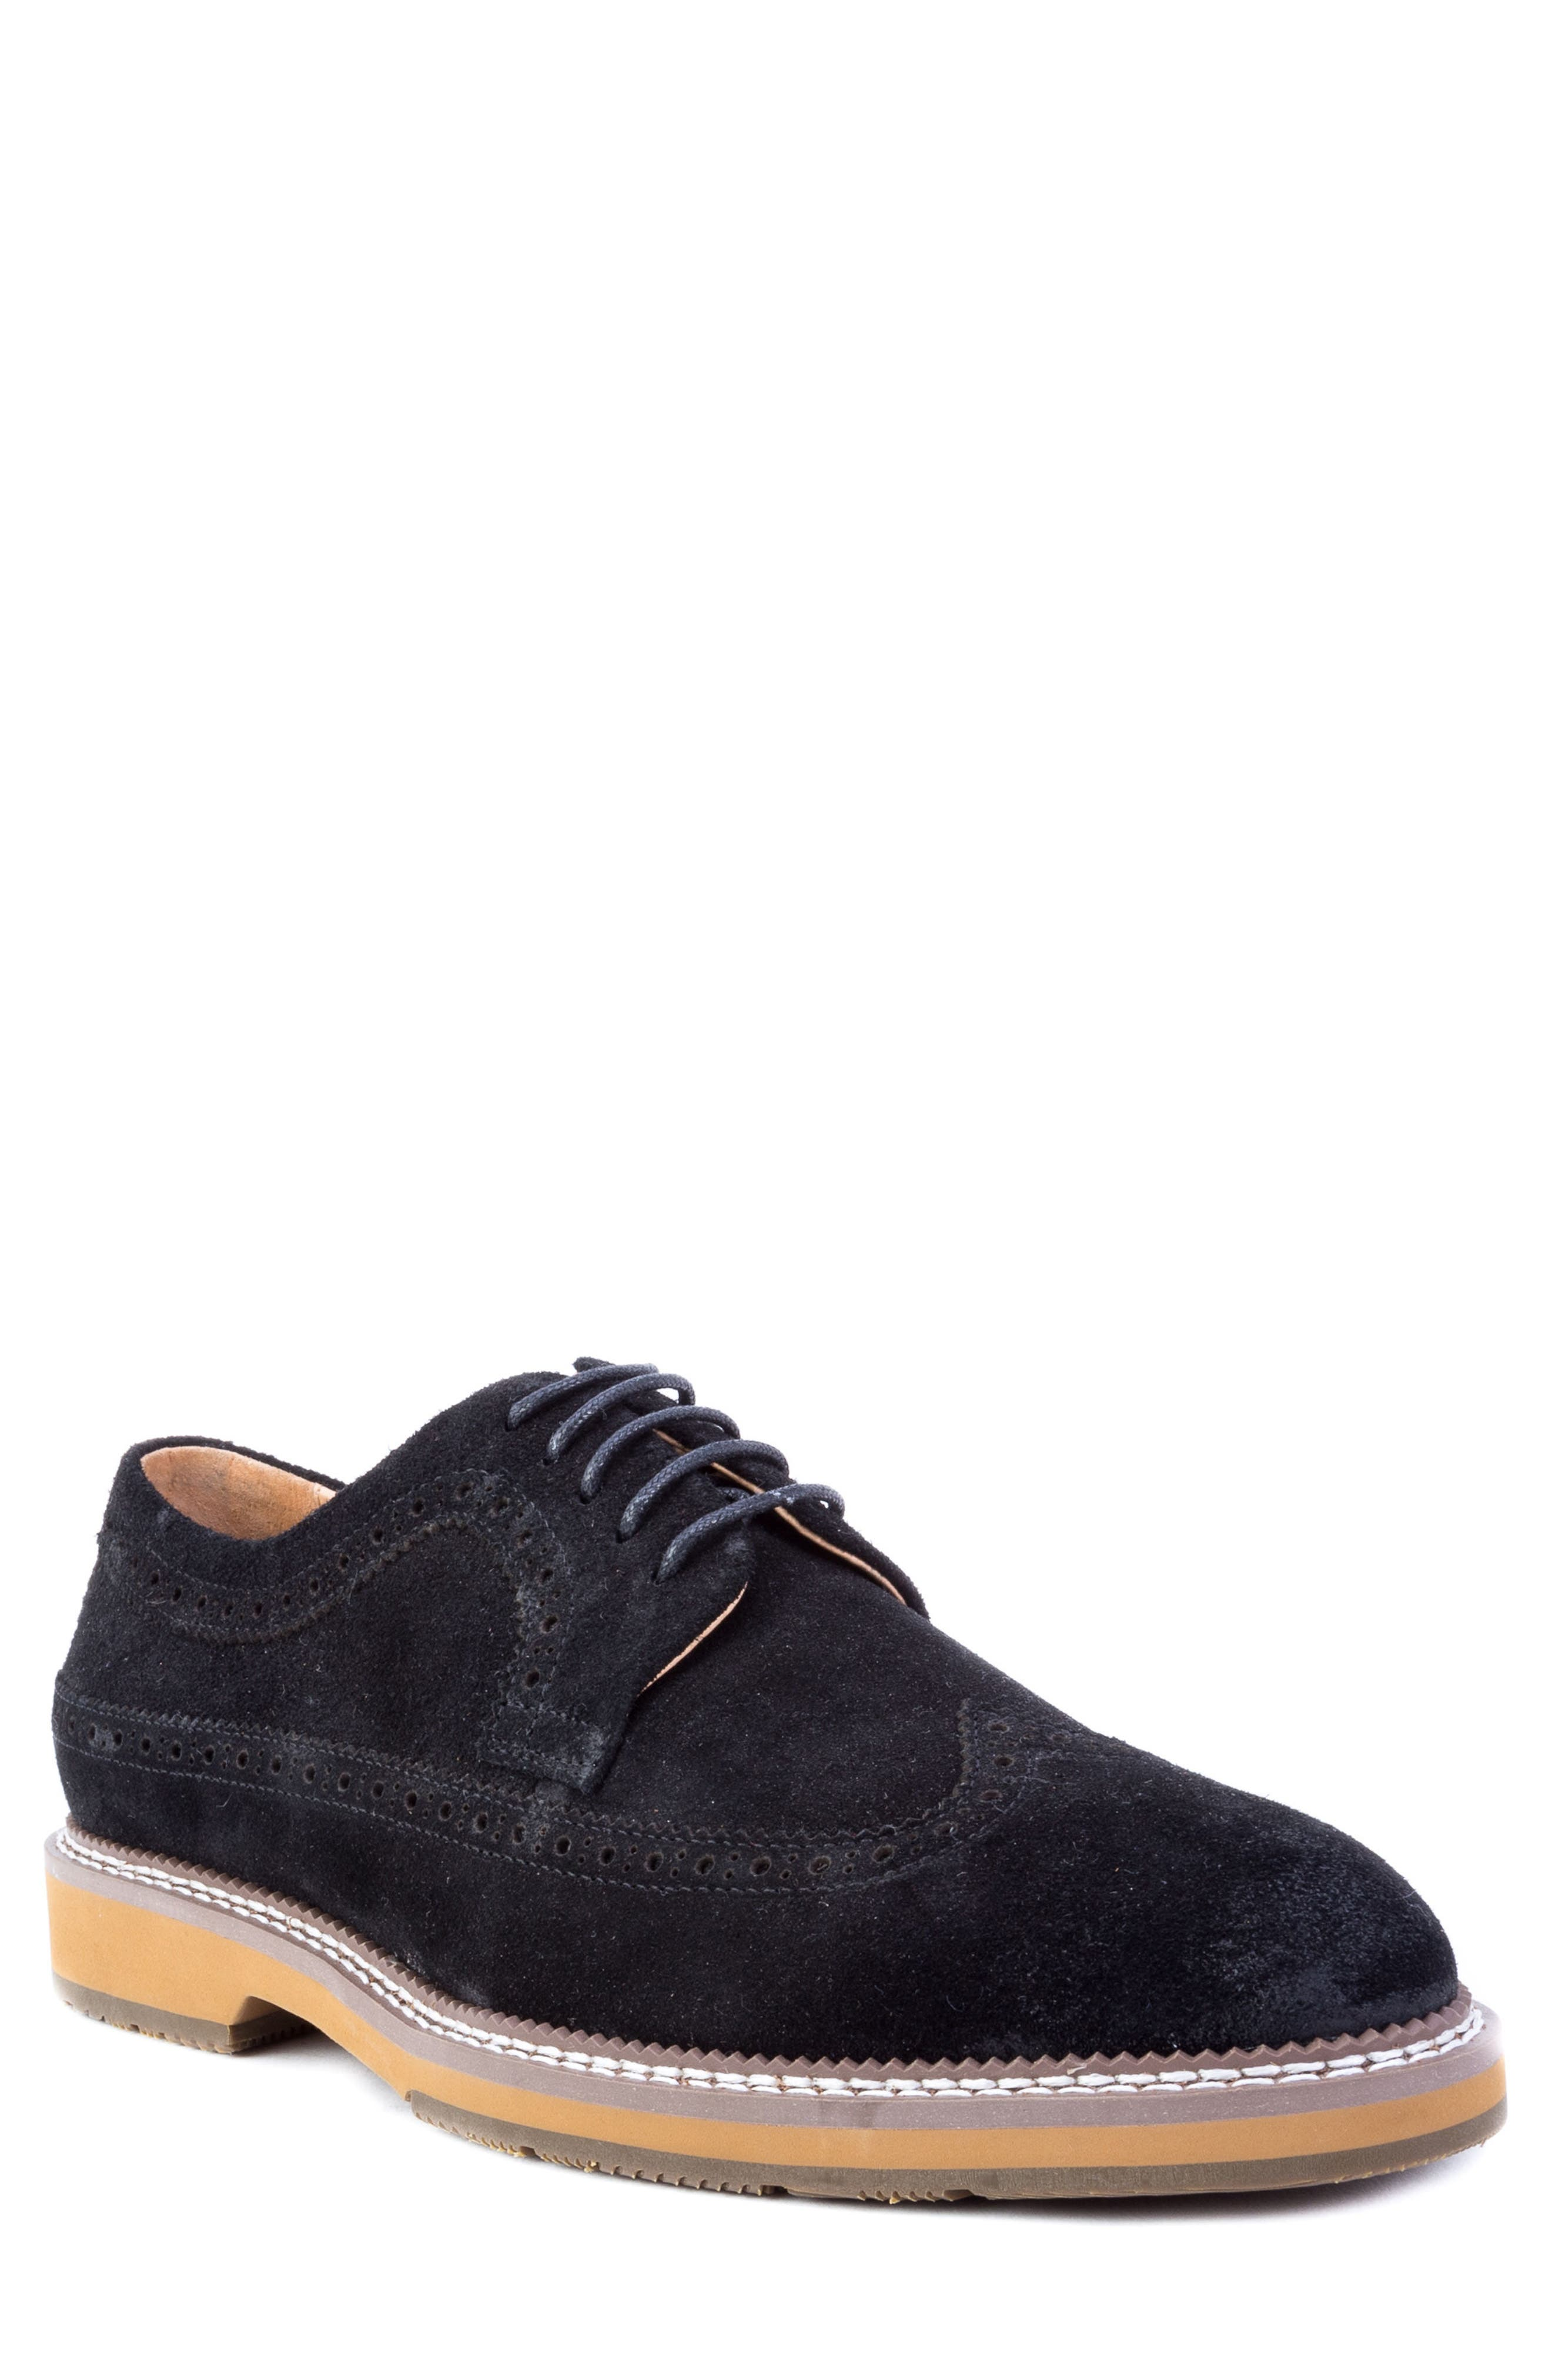 Modigliani Wingtip Derby,                             Main thumbnail 1, color,                             BLACK SUEDE